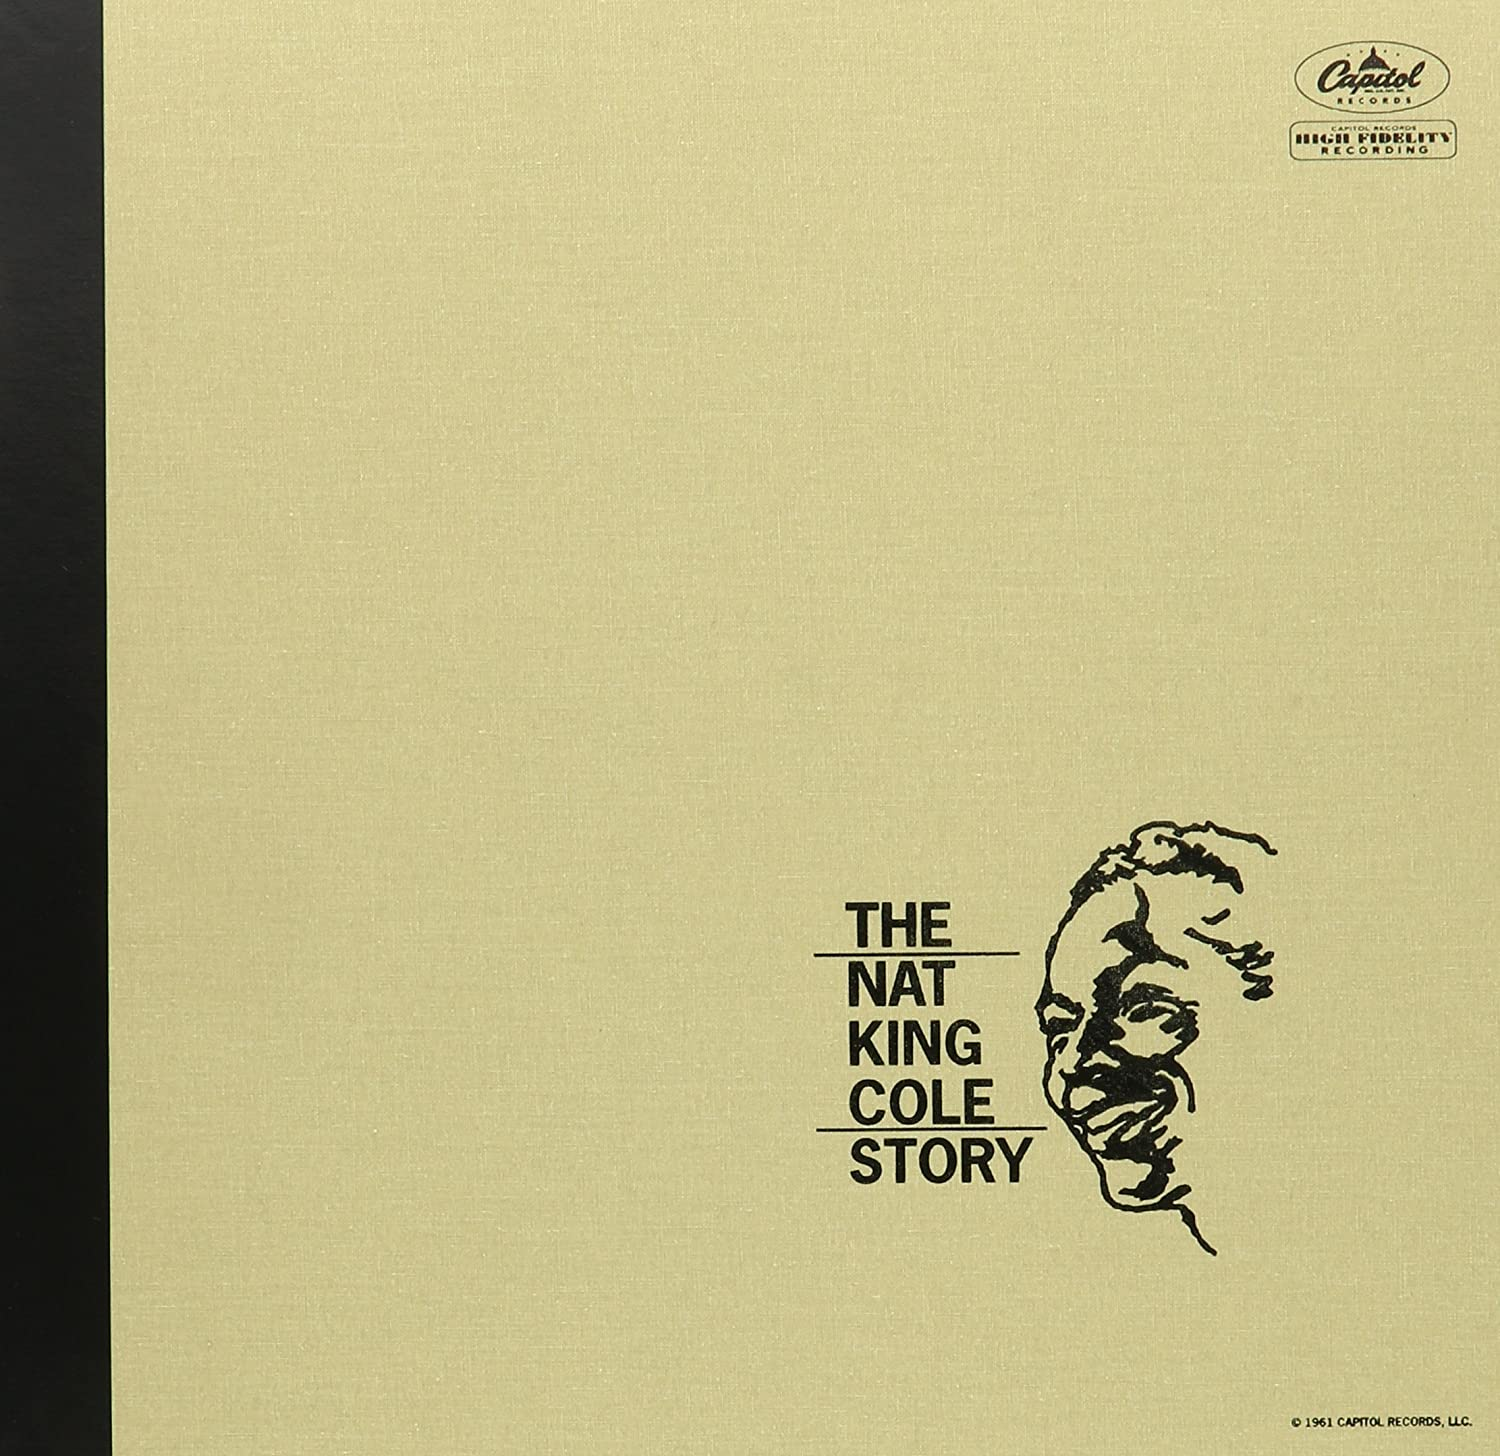 The Nat King Cole Story [12 inch Analog]                                                                                                                                                                                                                                                    <span class=